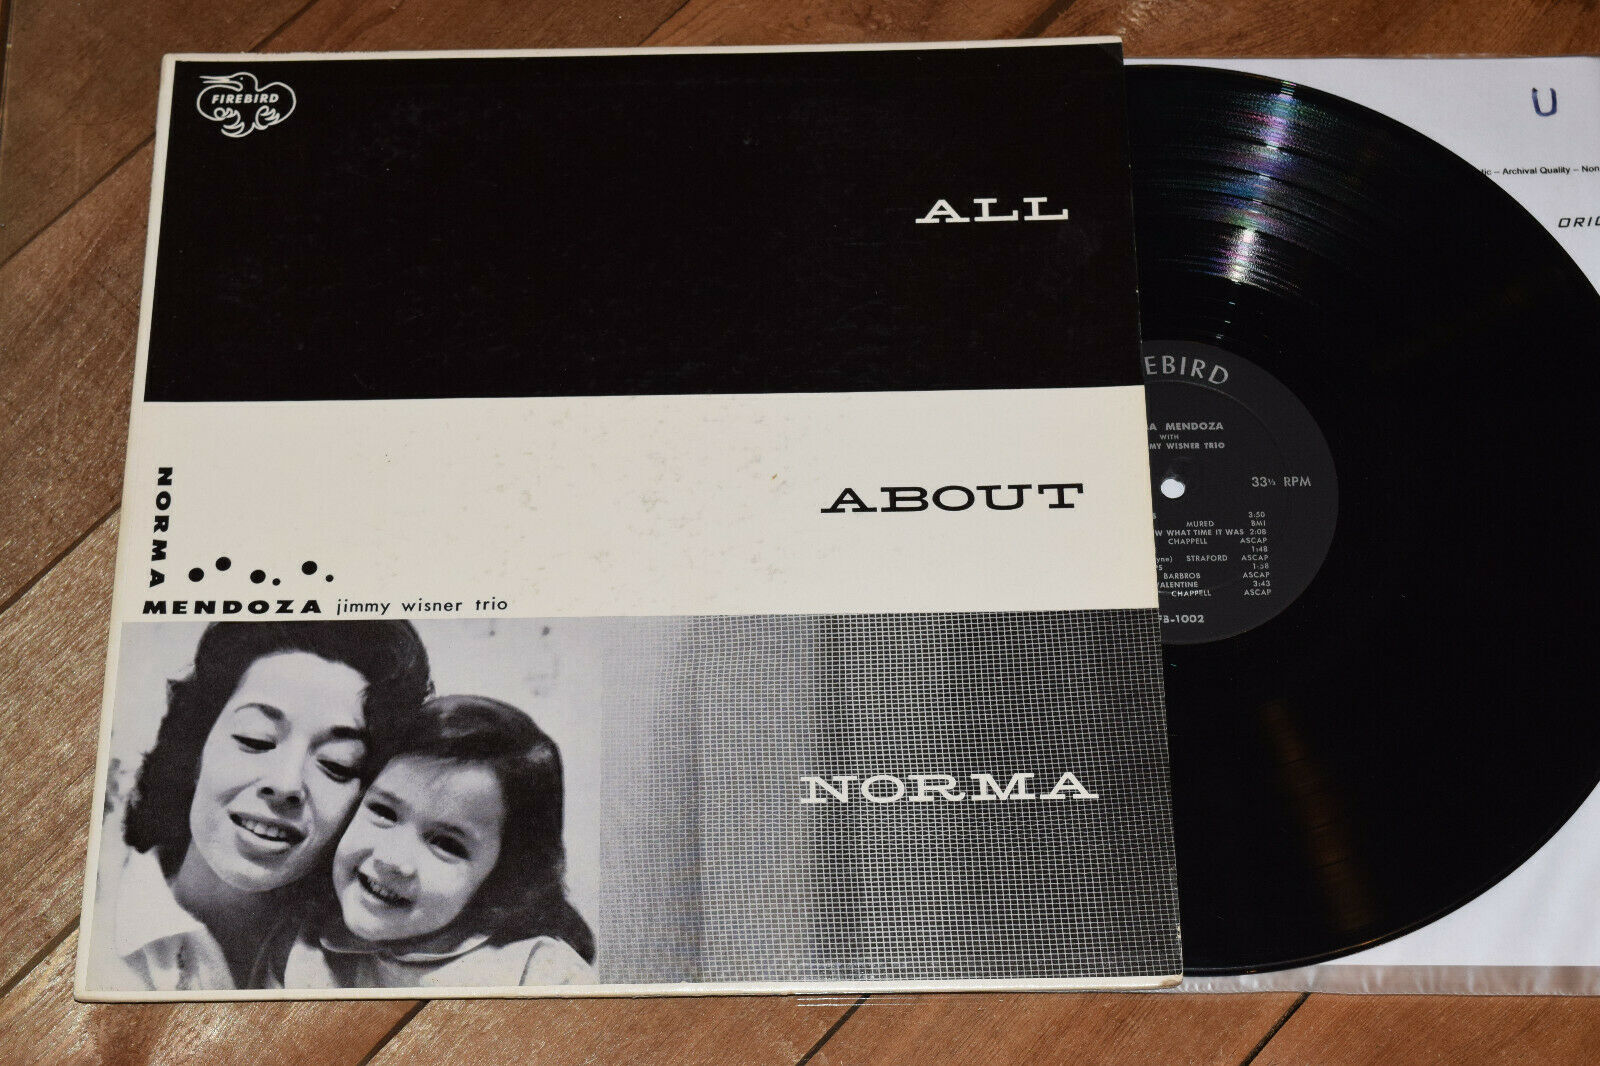 Norma Mendoza  All About EX Autographed DG Jimmy Wisner Firebird lp female vocal